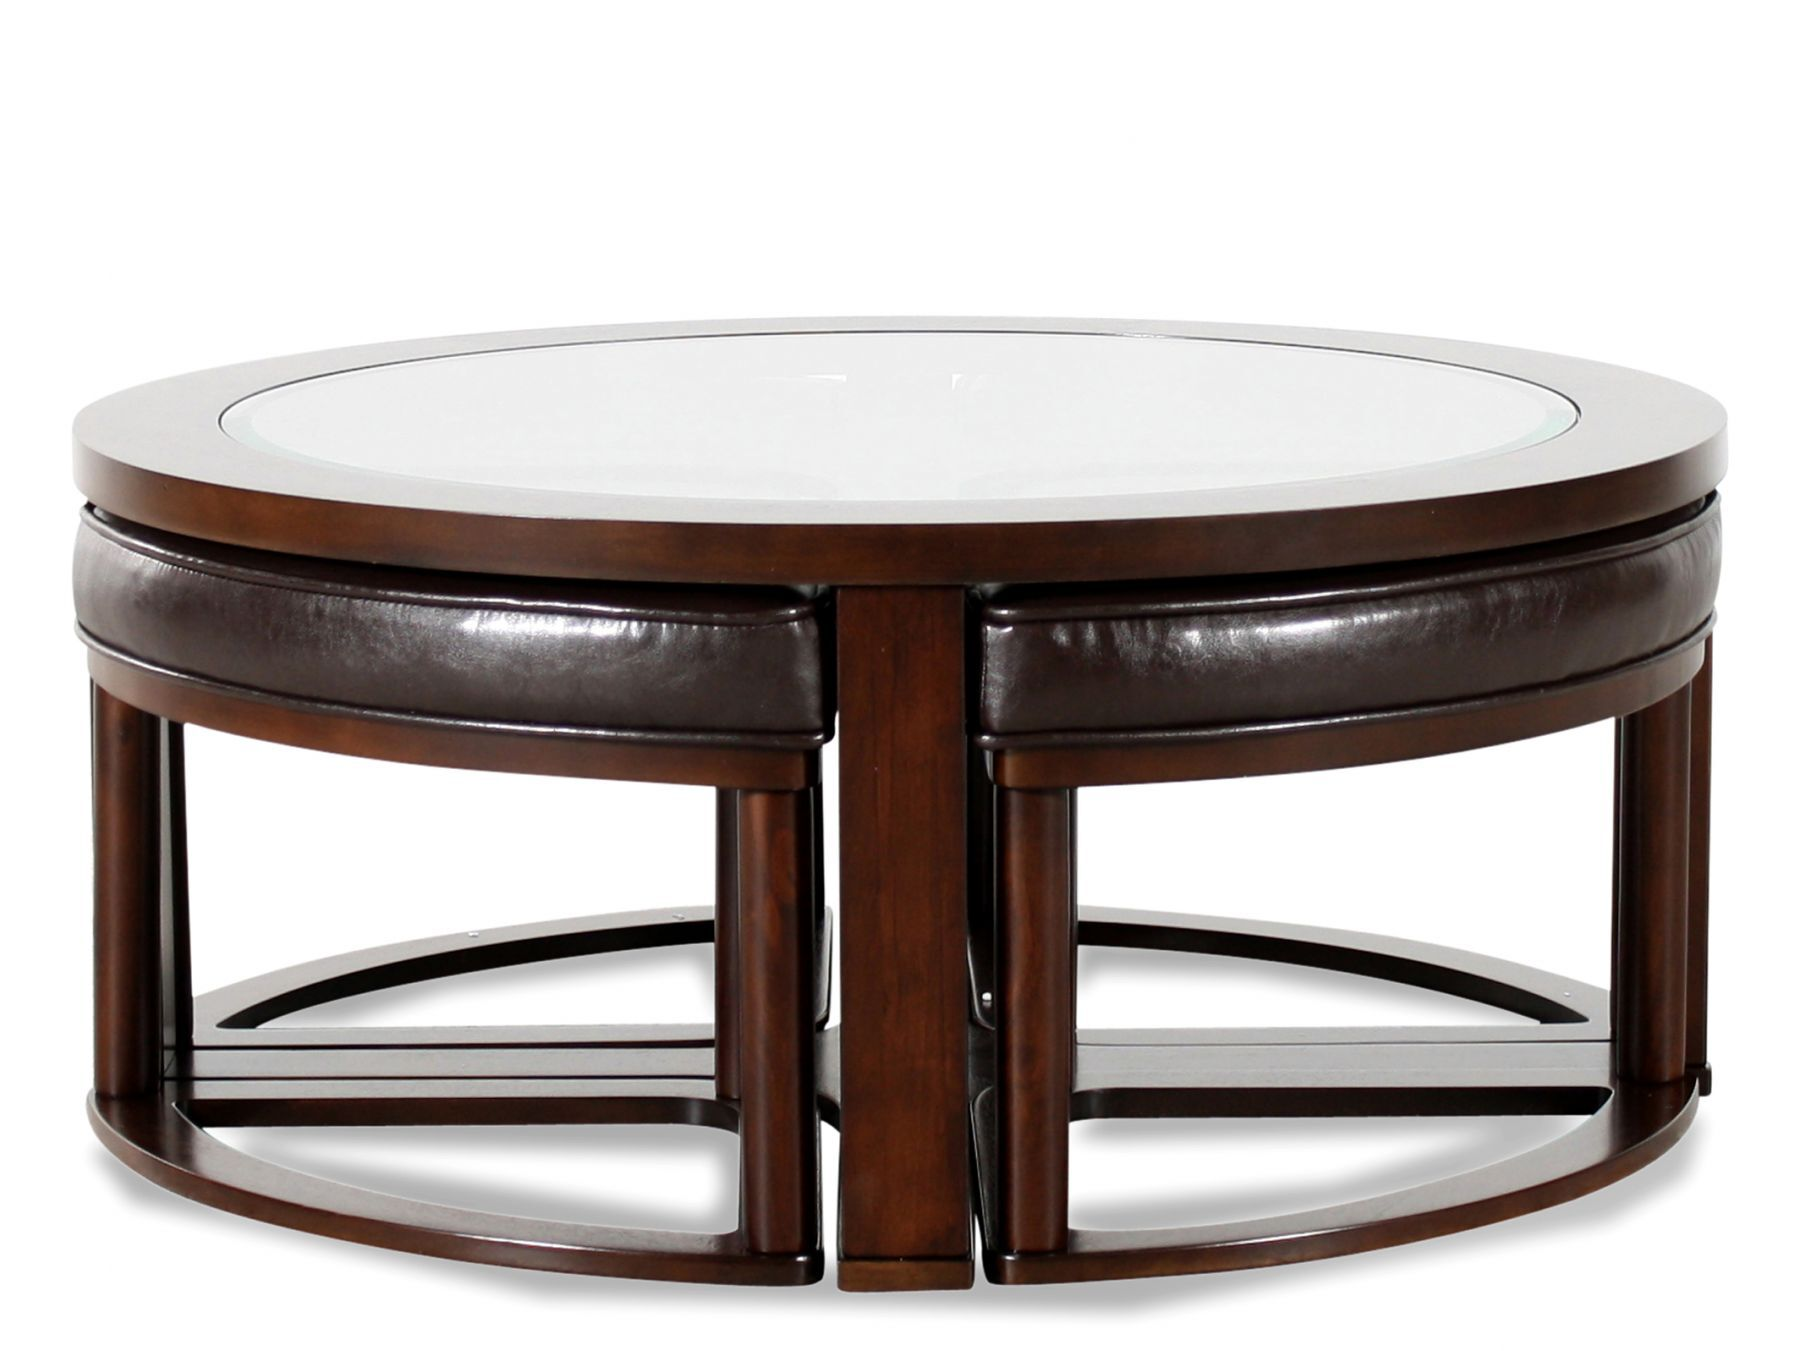 Ashley Marion Round Cocktail Table u0026&; Four Stools  sc 1 st  Mathis Brothers & Ashley Marion Round Cocktail Table u0026 Four Stools | Mathis Brothers ... islam-shia.org